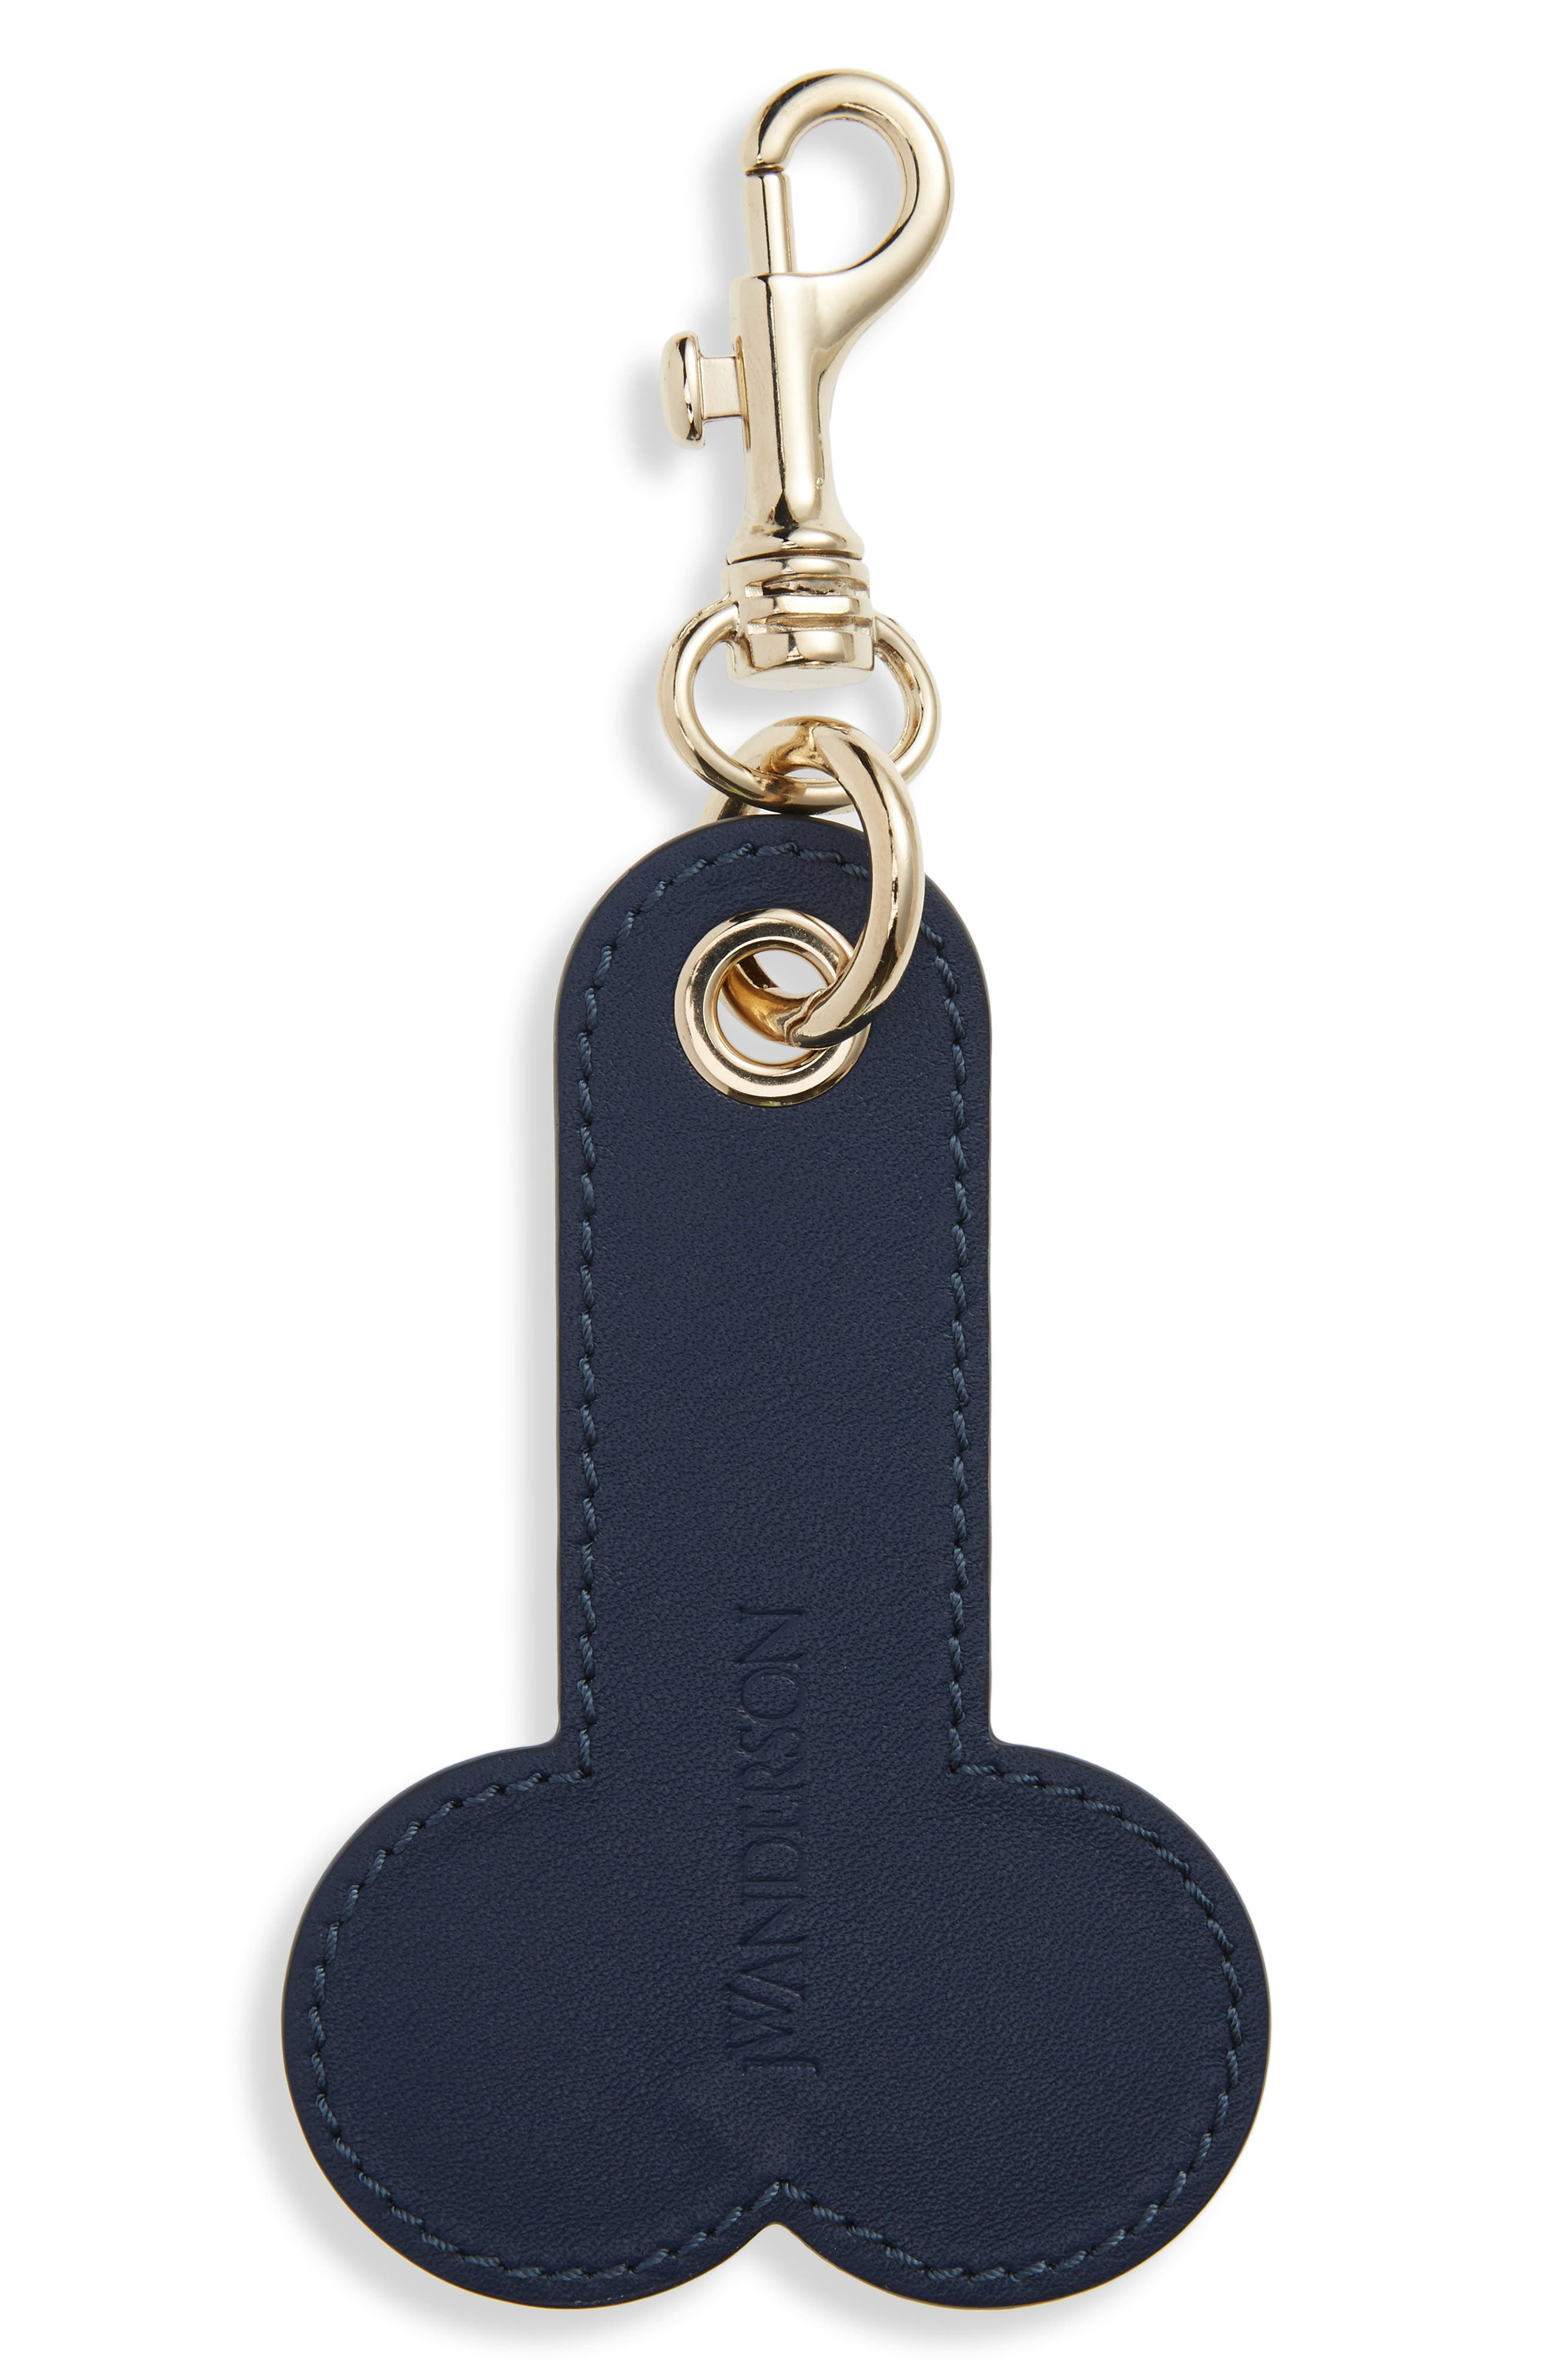 Alternate Image 1 Selected - J.W.ANDERSON Logo Embossed Leather Bag Charm